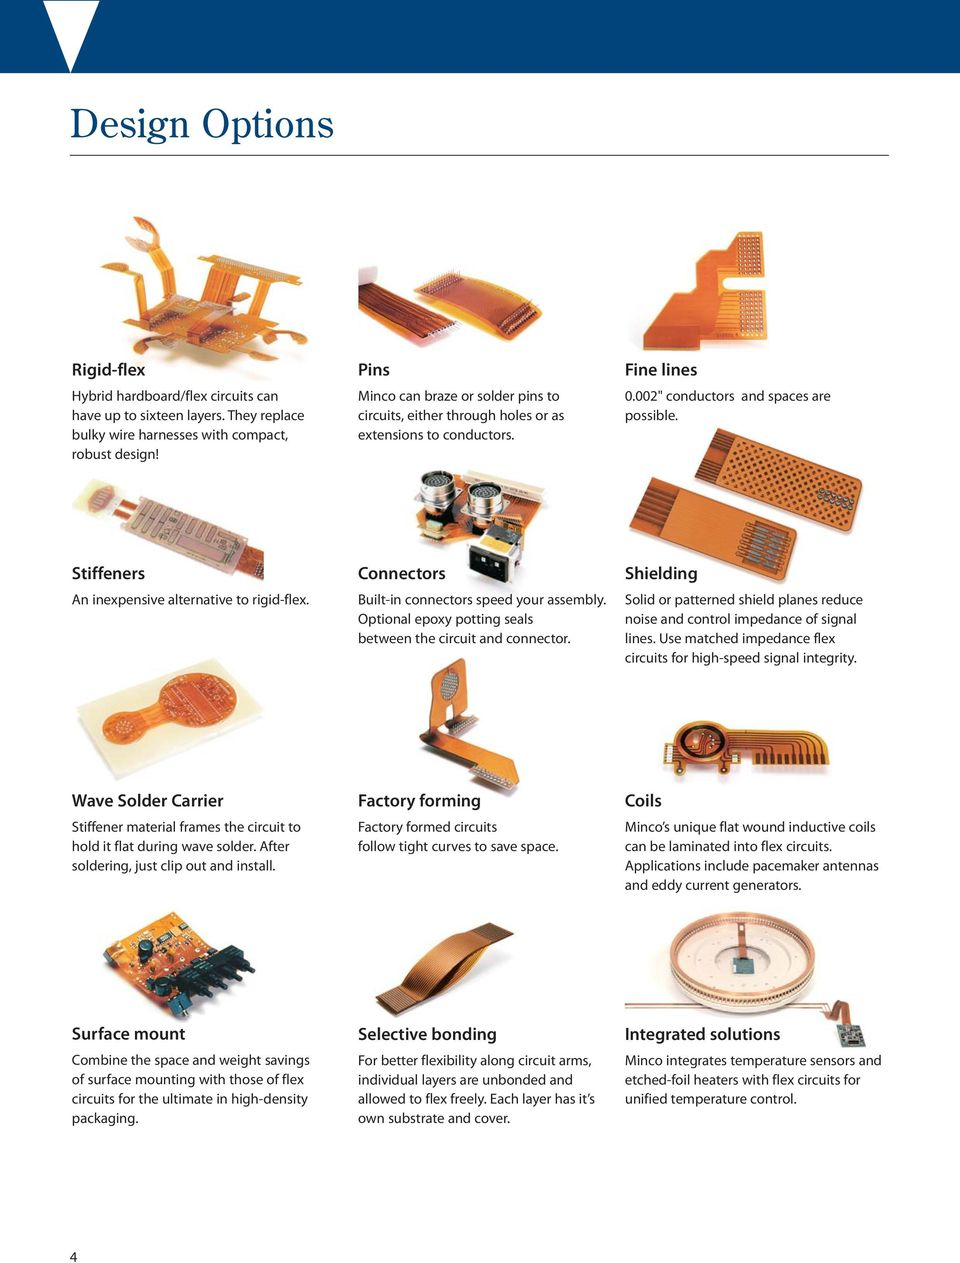 Flex Circuit Design Guide Pdf Layer Polimide Flexible Printed Board Manufacturers Pcb Custom Stiffeners An Inexpensive Alternative To Rigid Connectors Built In Speed Your